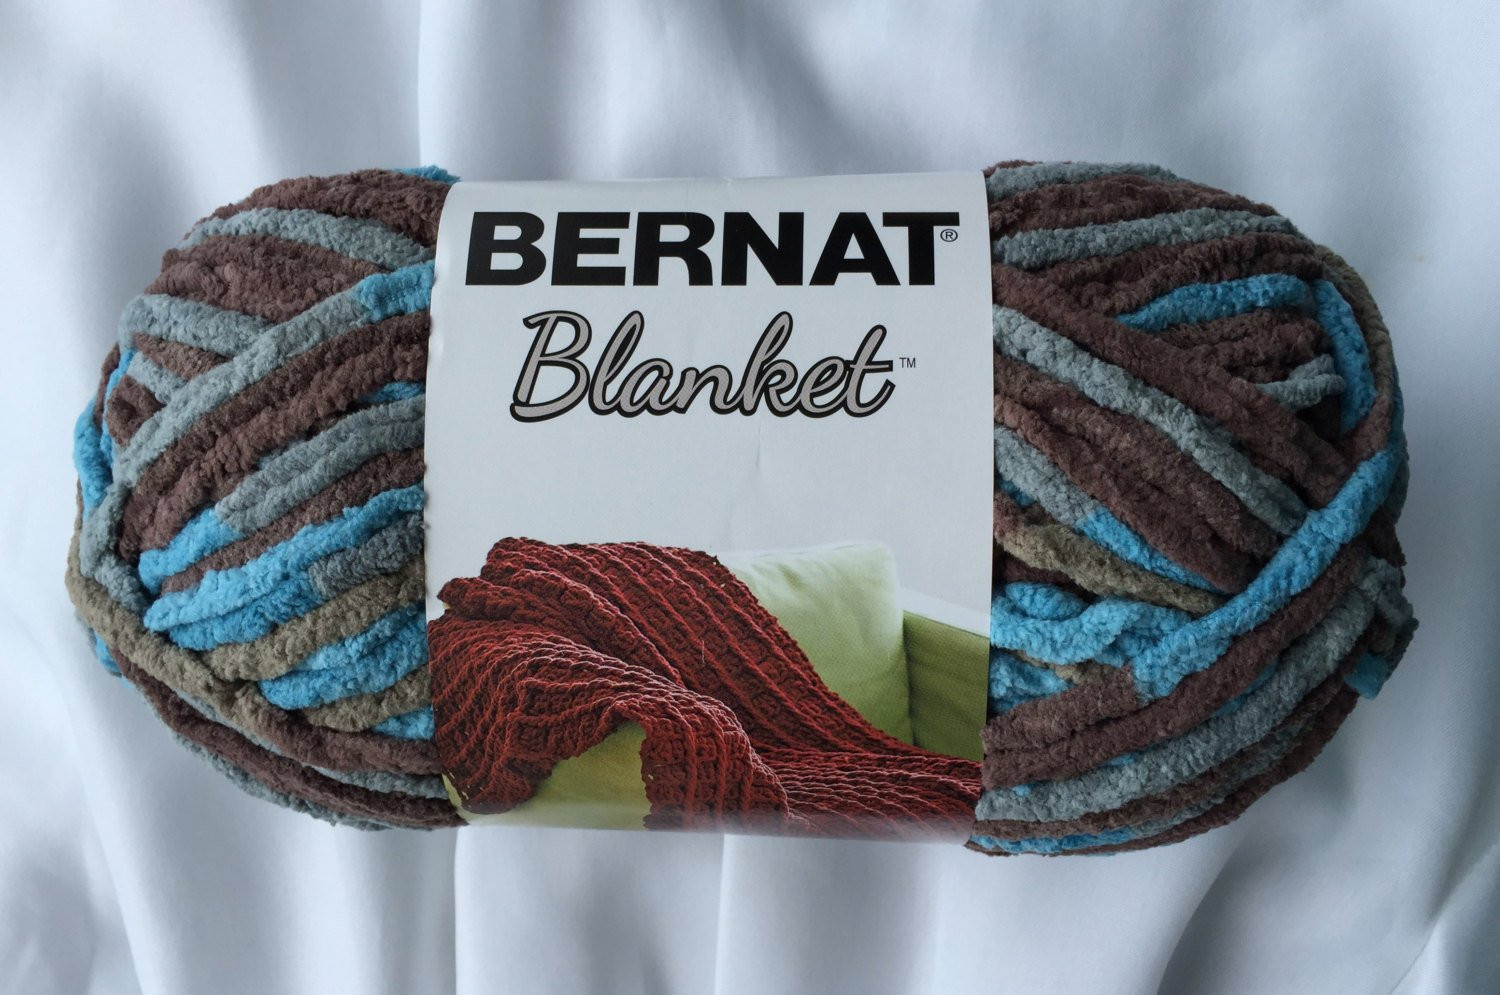 Bernat Blanket Yarn Best Of Coastal Cottage Bernat Blanket Yarn 5 3 Oz 150 G Of Beautiful 42 Models Bernat Blanket Yarn